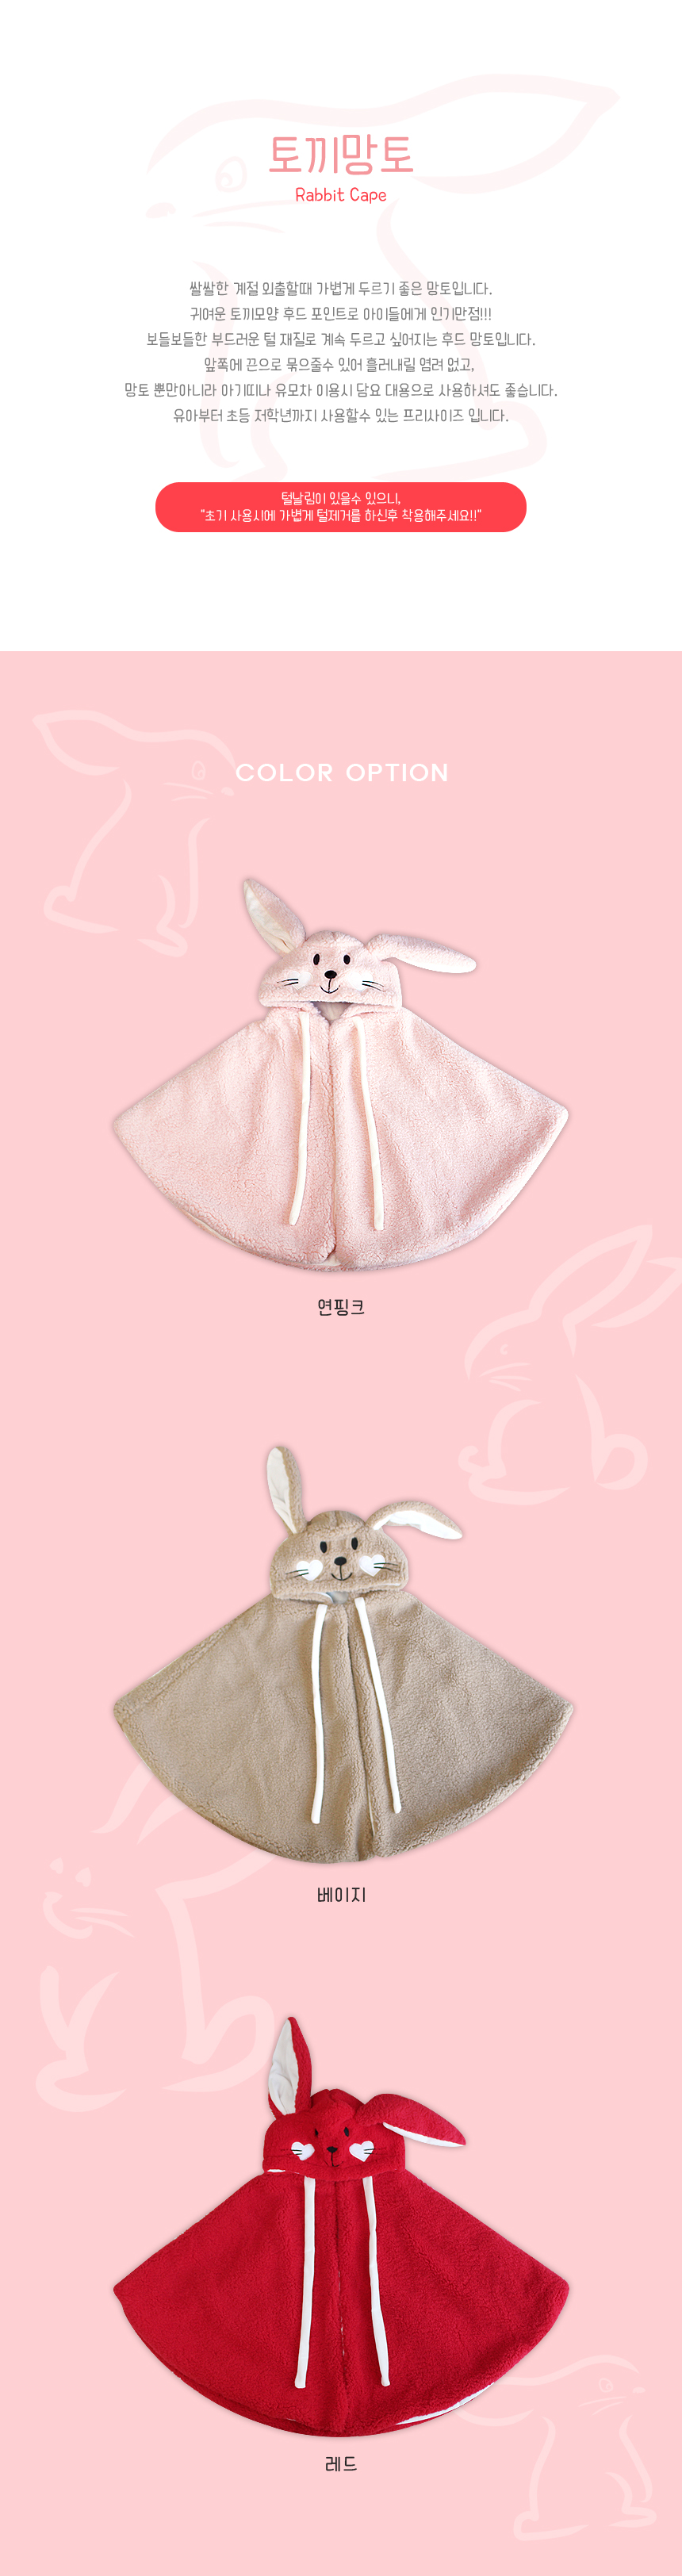 rabbit_cape_01.jpg